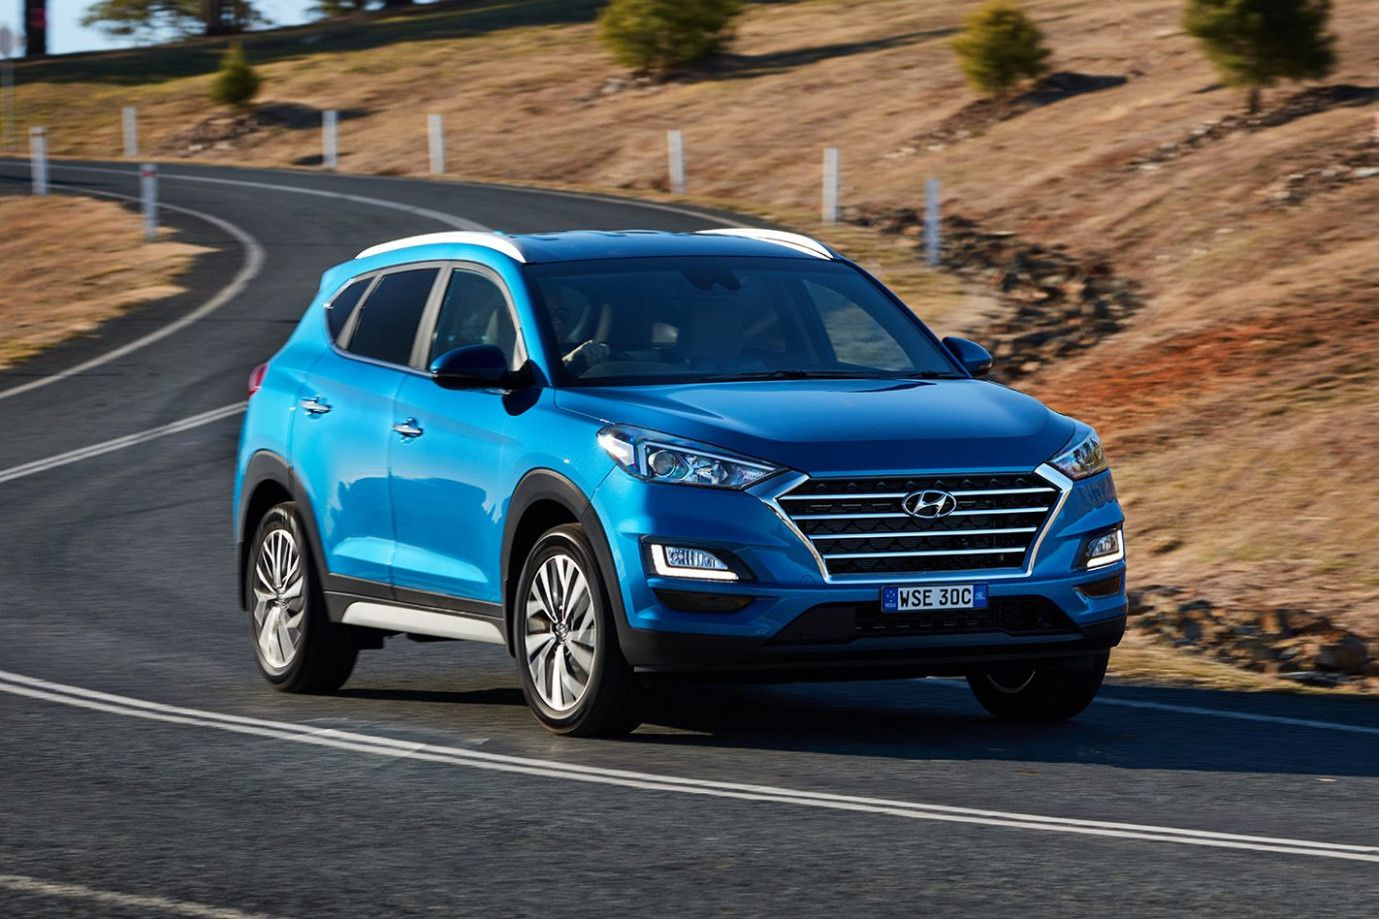 Hyundai Tucson 2020 Review Price And Release Date Hyundai Tucson Hyundai Tucson Car